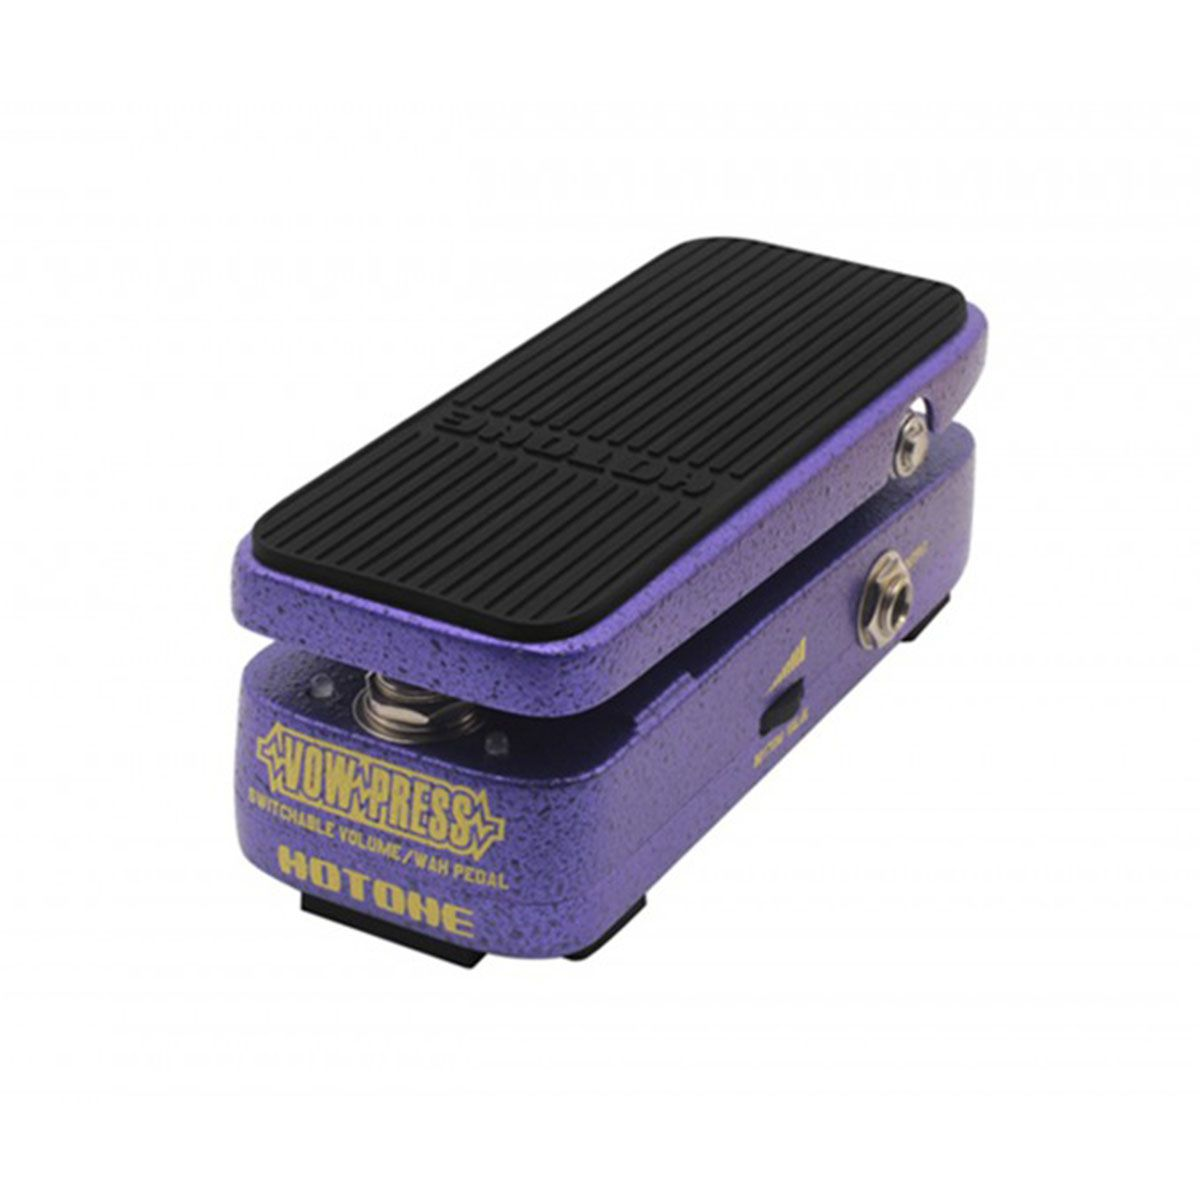 Pedal Hotone Vow Press VP-10 Wah Wah